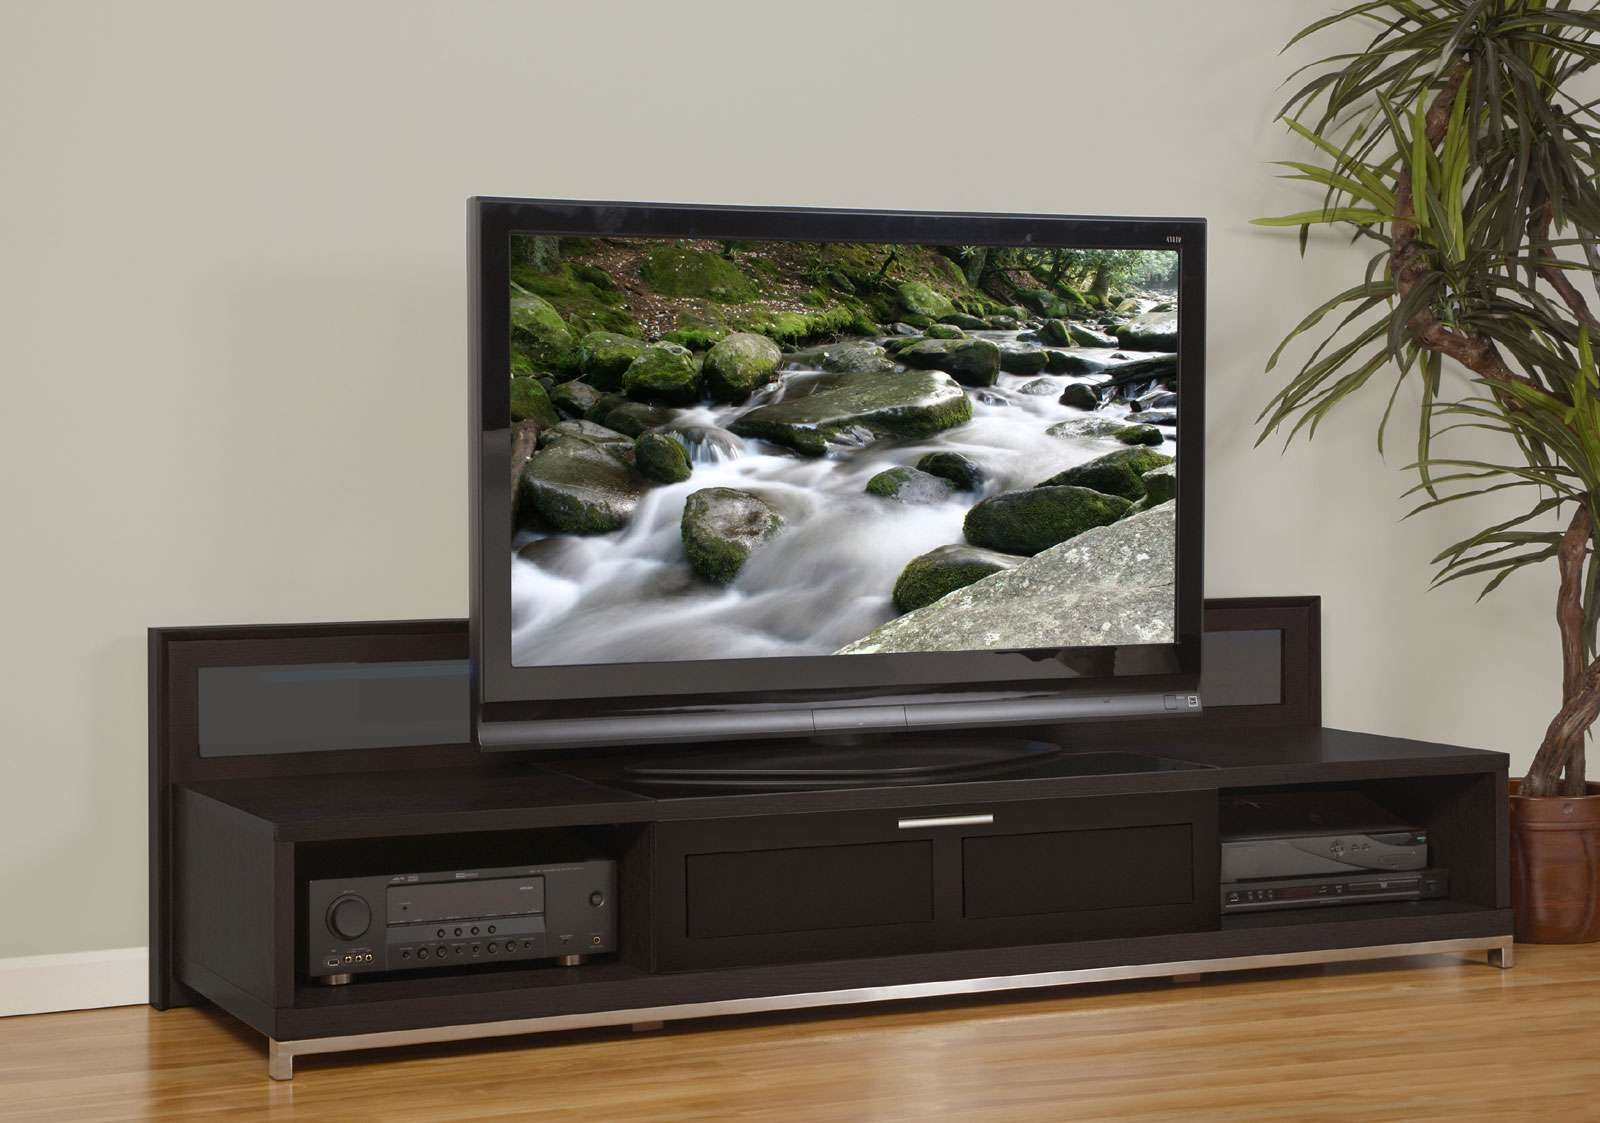 Mocca Stained Solid Wood Low Profile Tv Stand With Stainless Steel Throughout Modern Low Profile Tv Stands (View 6 of 20)